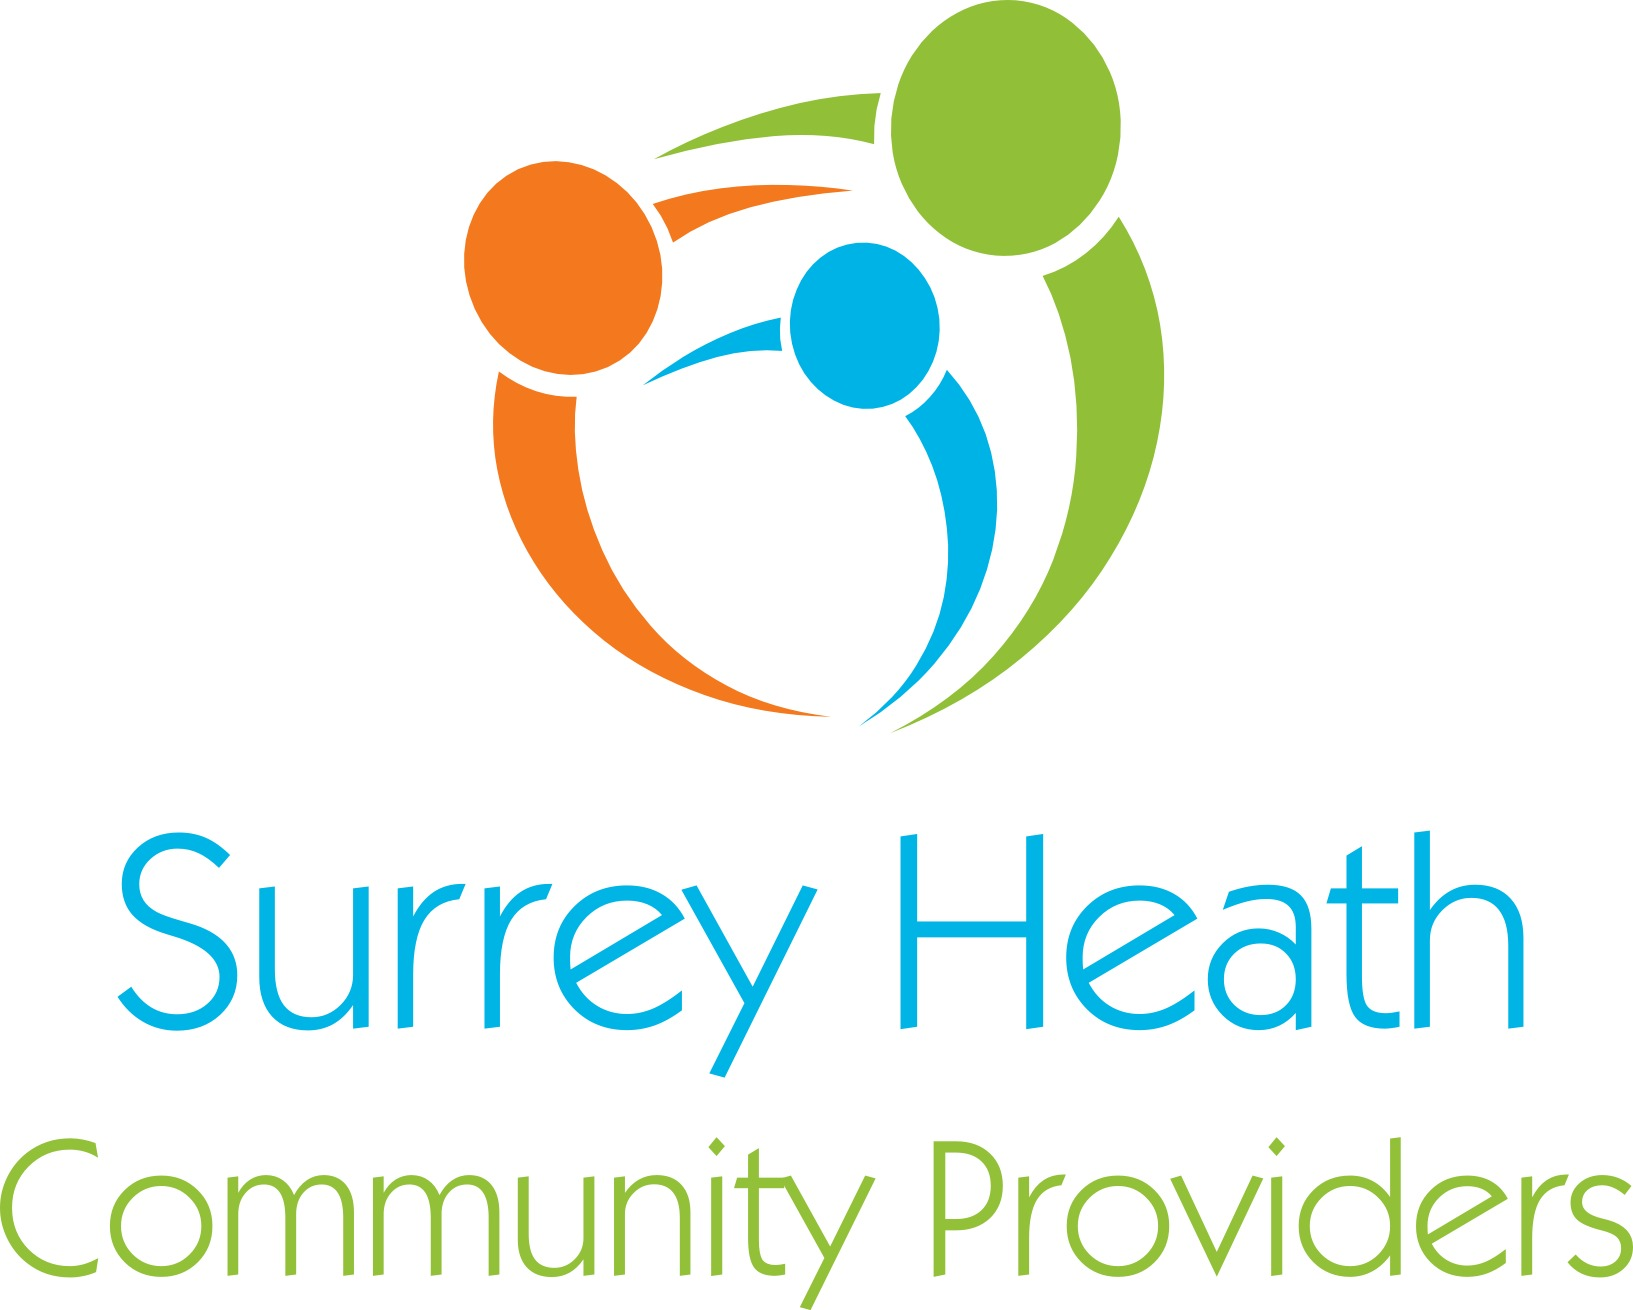 Surrey Heath Community Providers